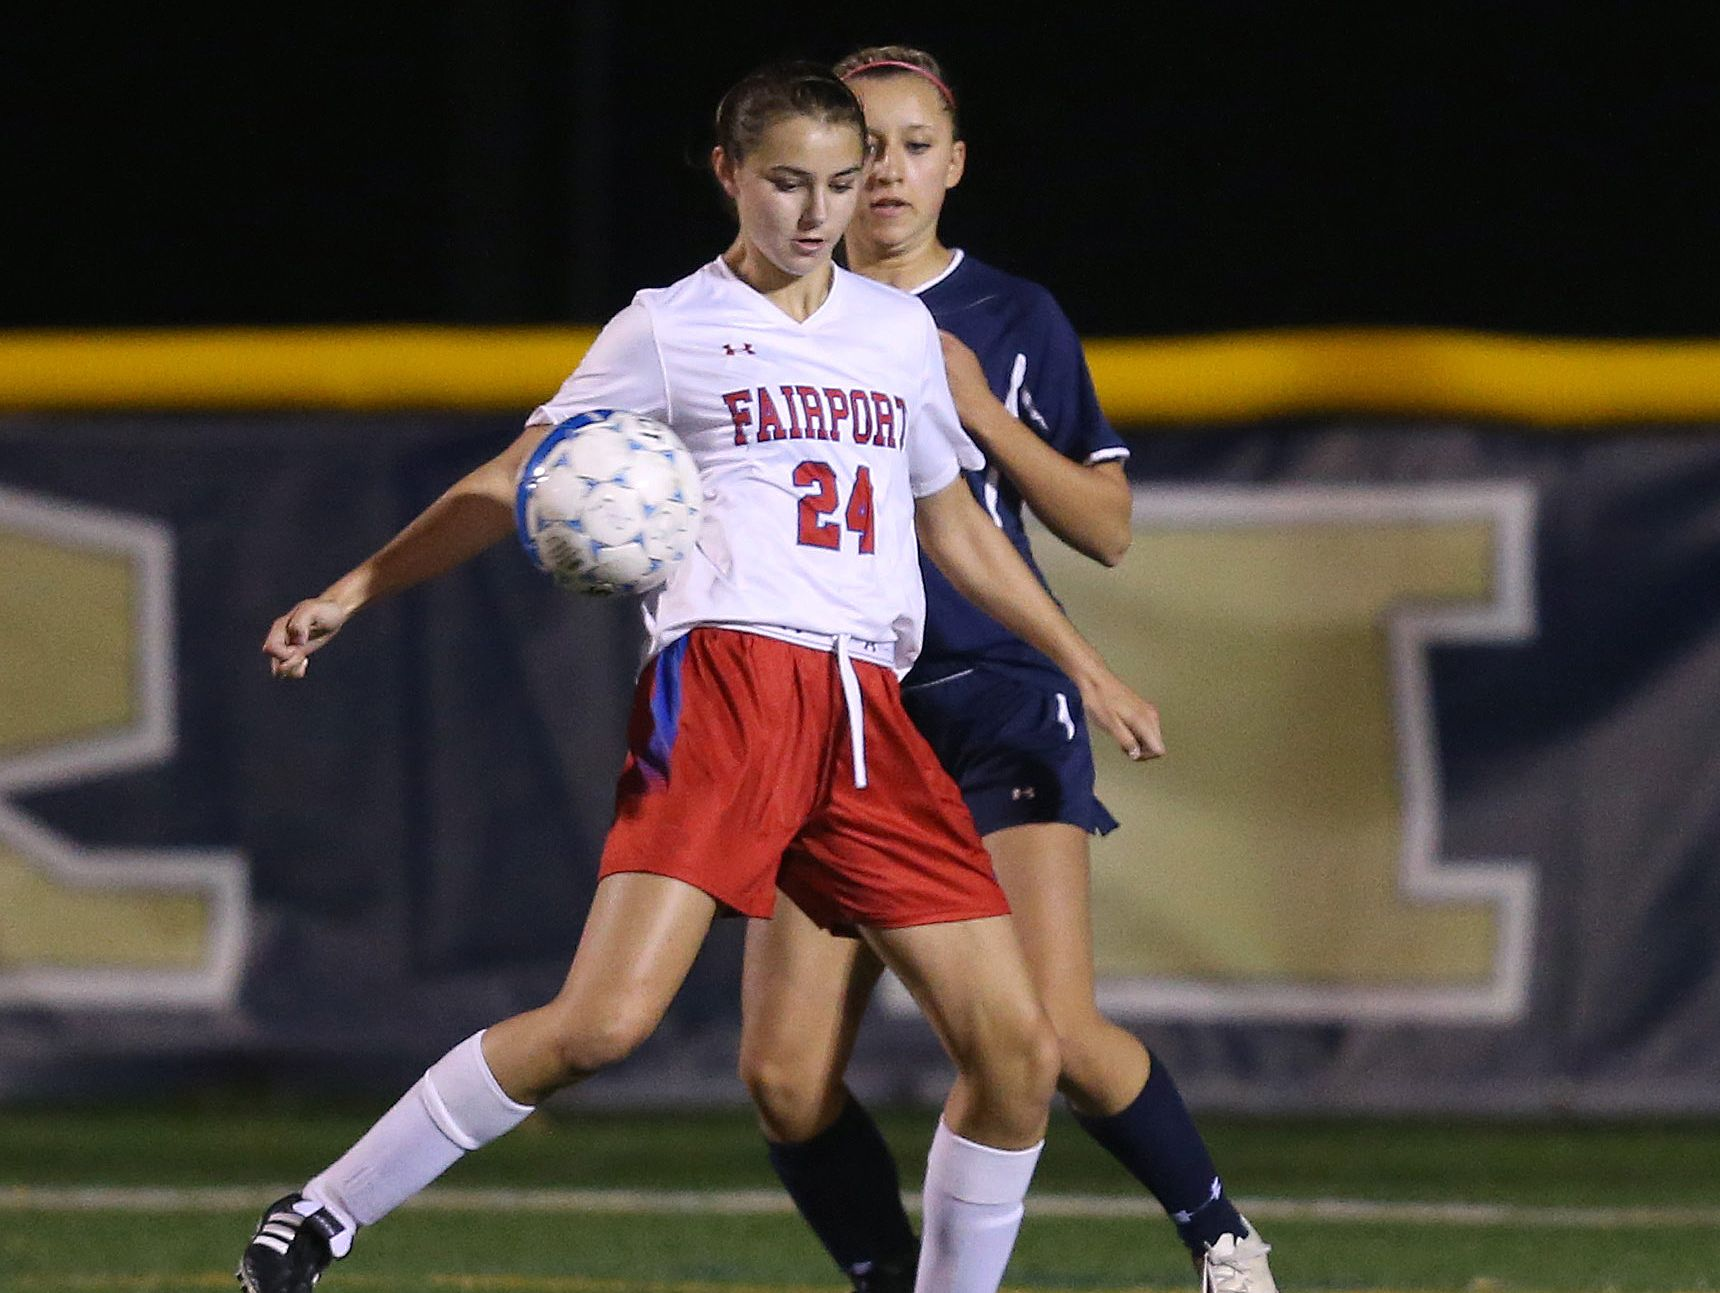 Fairport junior forward Claire Myers leads the Red Raiders attack with six goals and five assists in their 6-0 start. The daughter of former Rochester Rhinos coach Jesse Myers was All-Greater Rochester last fall.